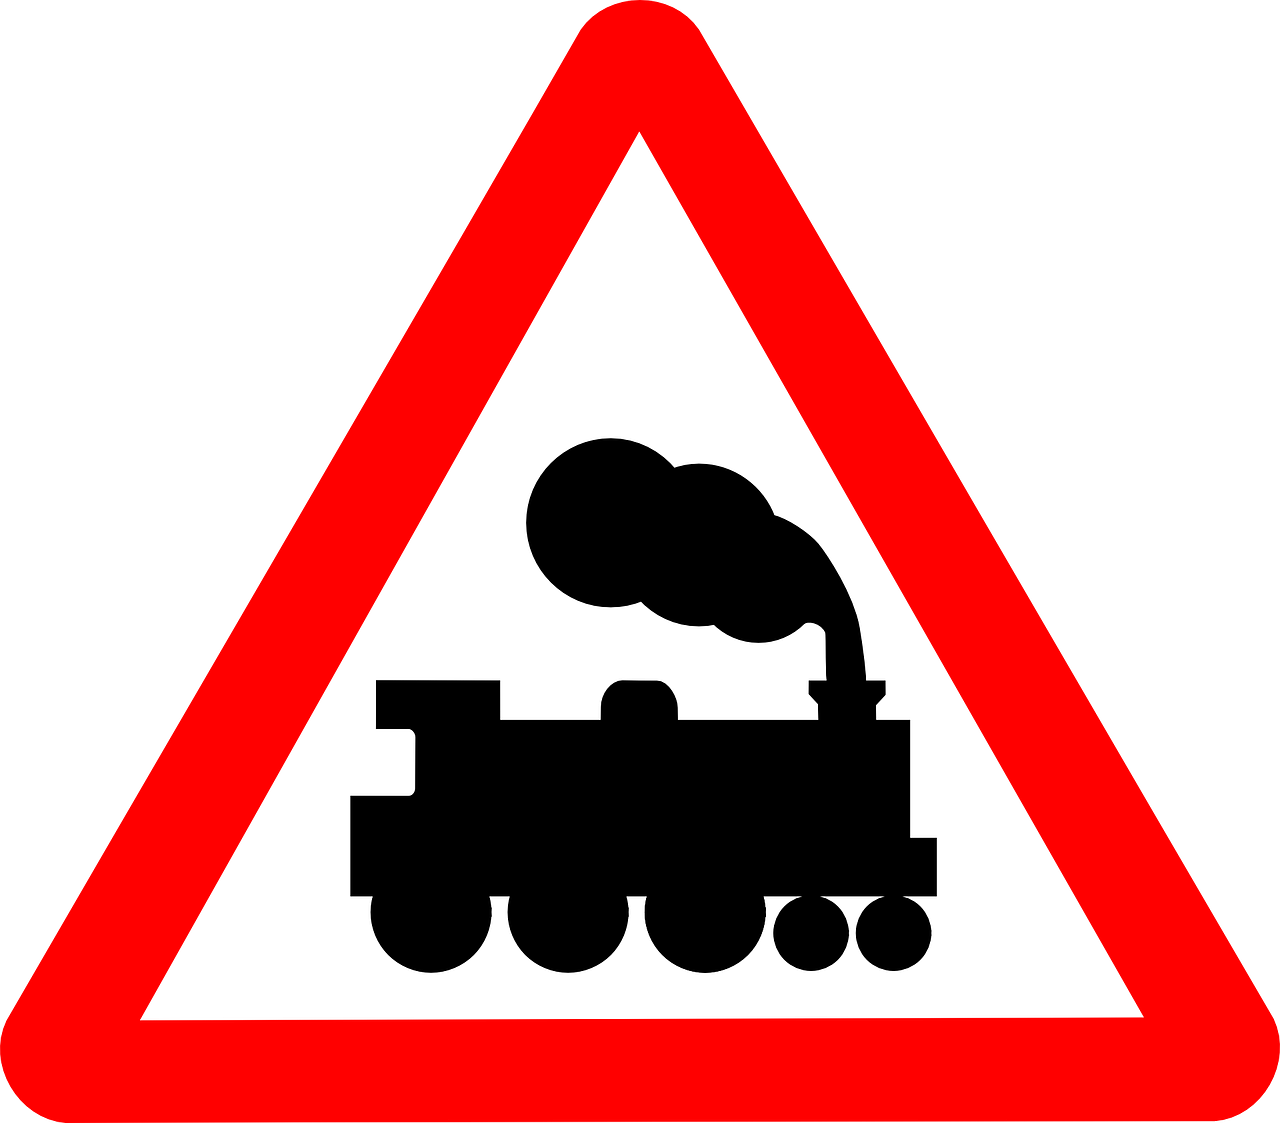 image-8234174-railway-crossing-26540_1280.png